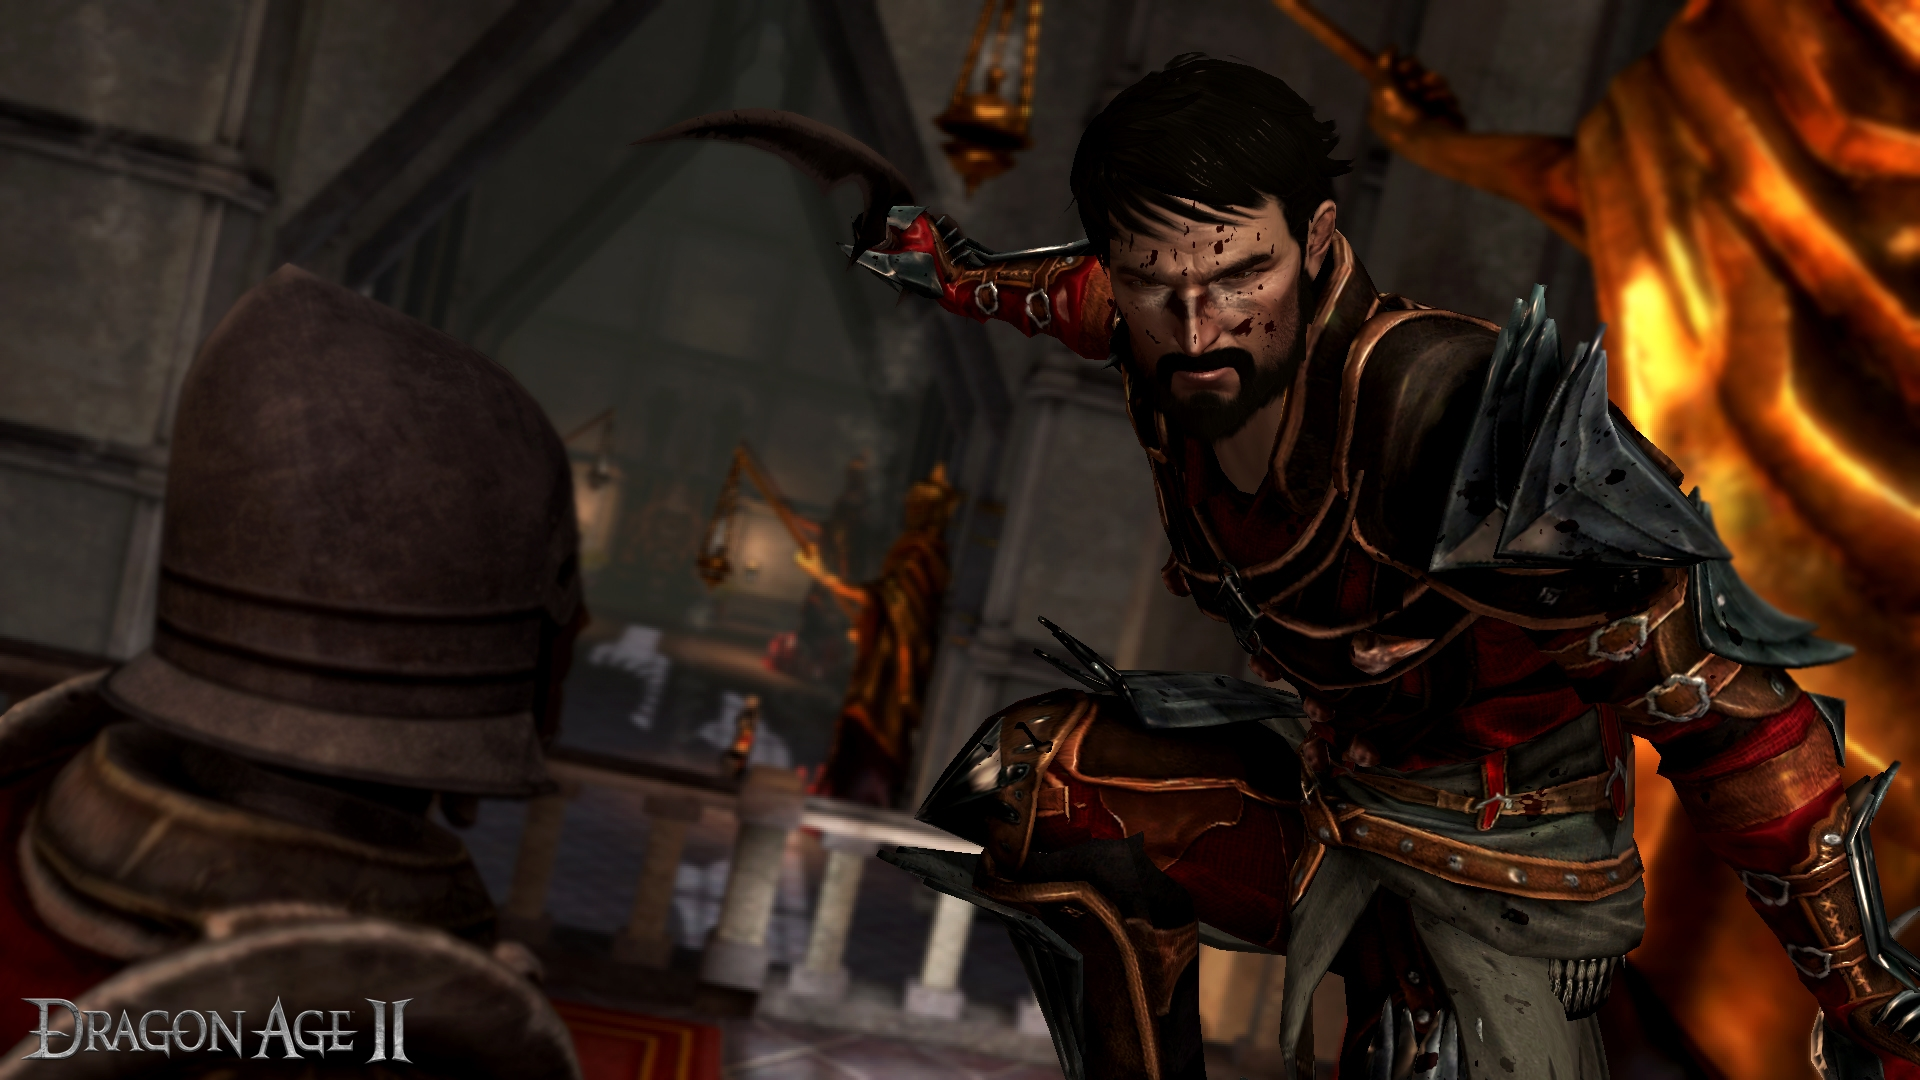 Game Fix / Crack: Dragon Age 3: Inquisition Deluxe v1 0 All